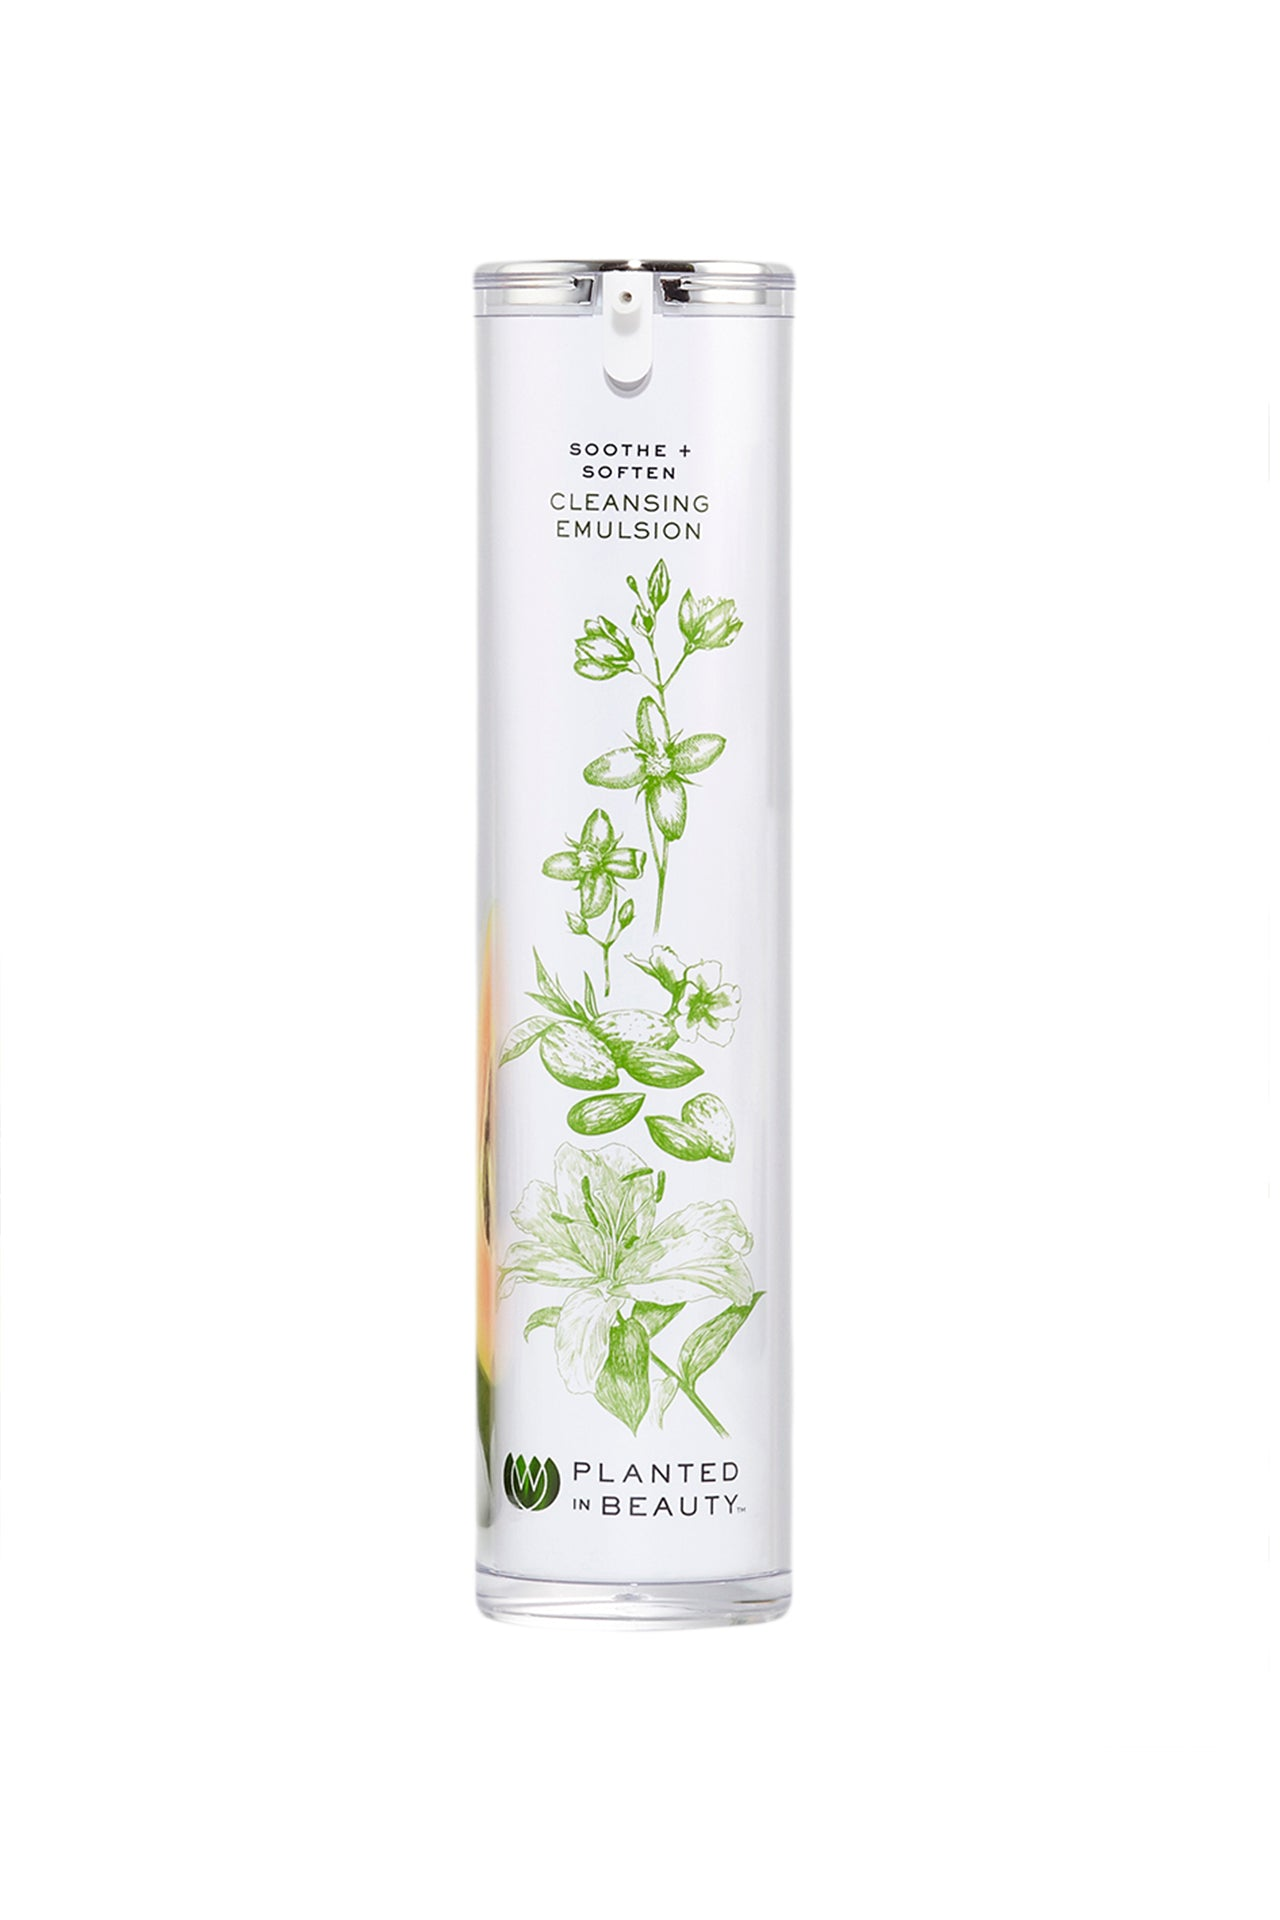 Soothe & Soften Cleansing Emulsion